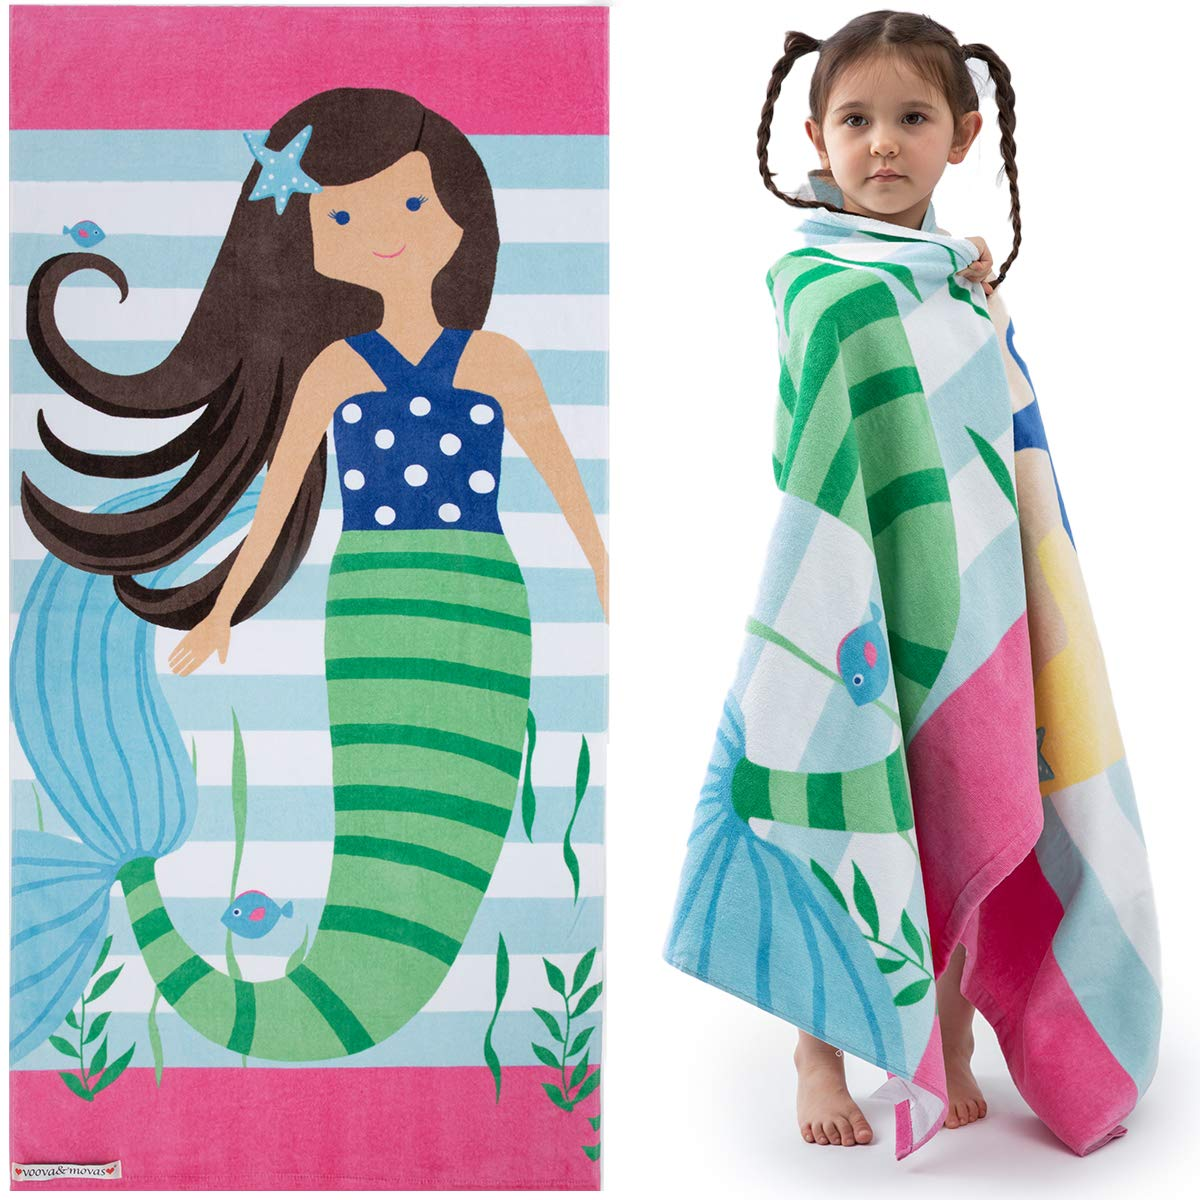 """VOOVA & MOVAS Kids Bath/Pool/Beach Towel for Toddlers Boys Girls,Oversized 30""""x60"""",Soft Absorbent Cotton Swim Cover ups,Mermaid Brown Theme"""